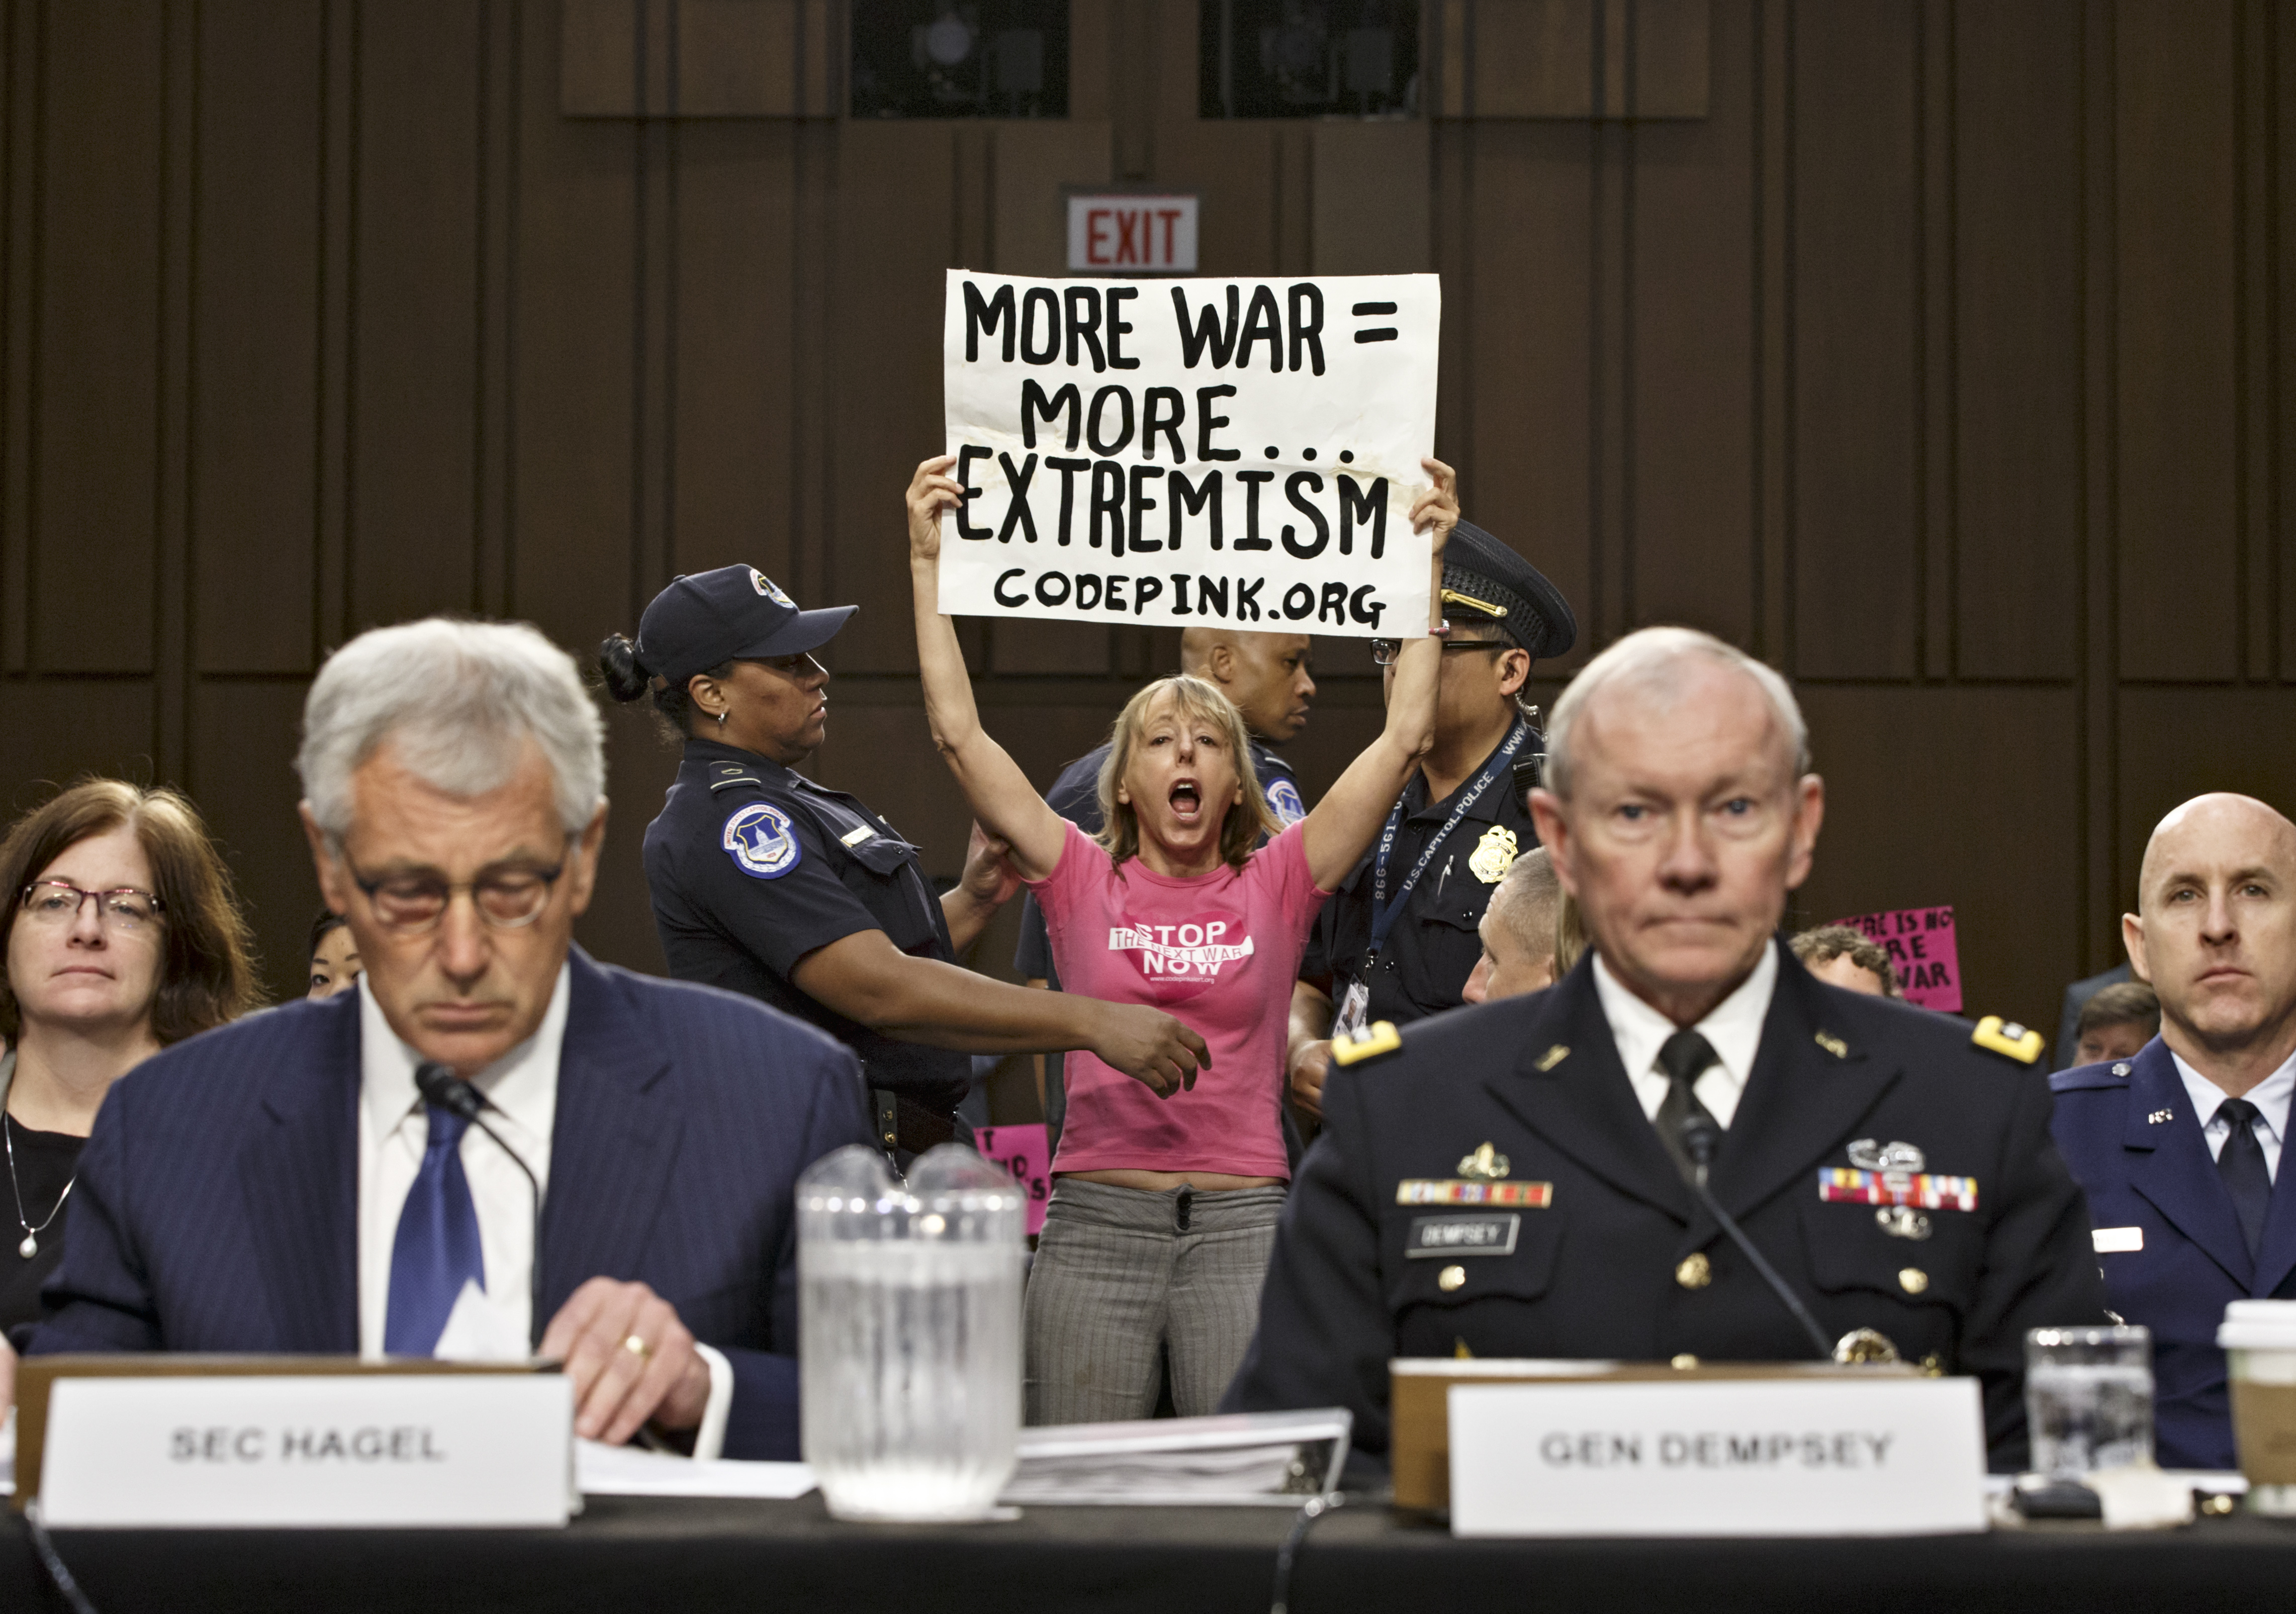 Protesters disrupt Senate hearing on ISIS